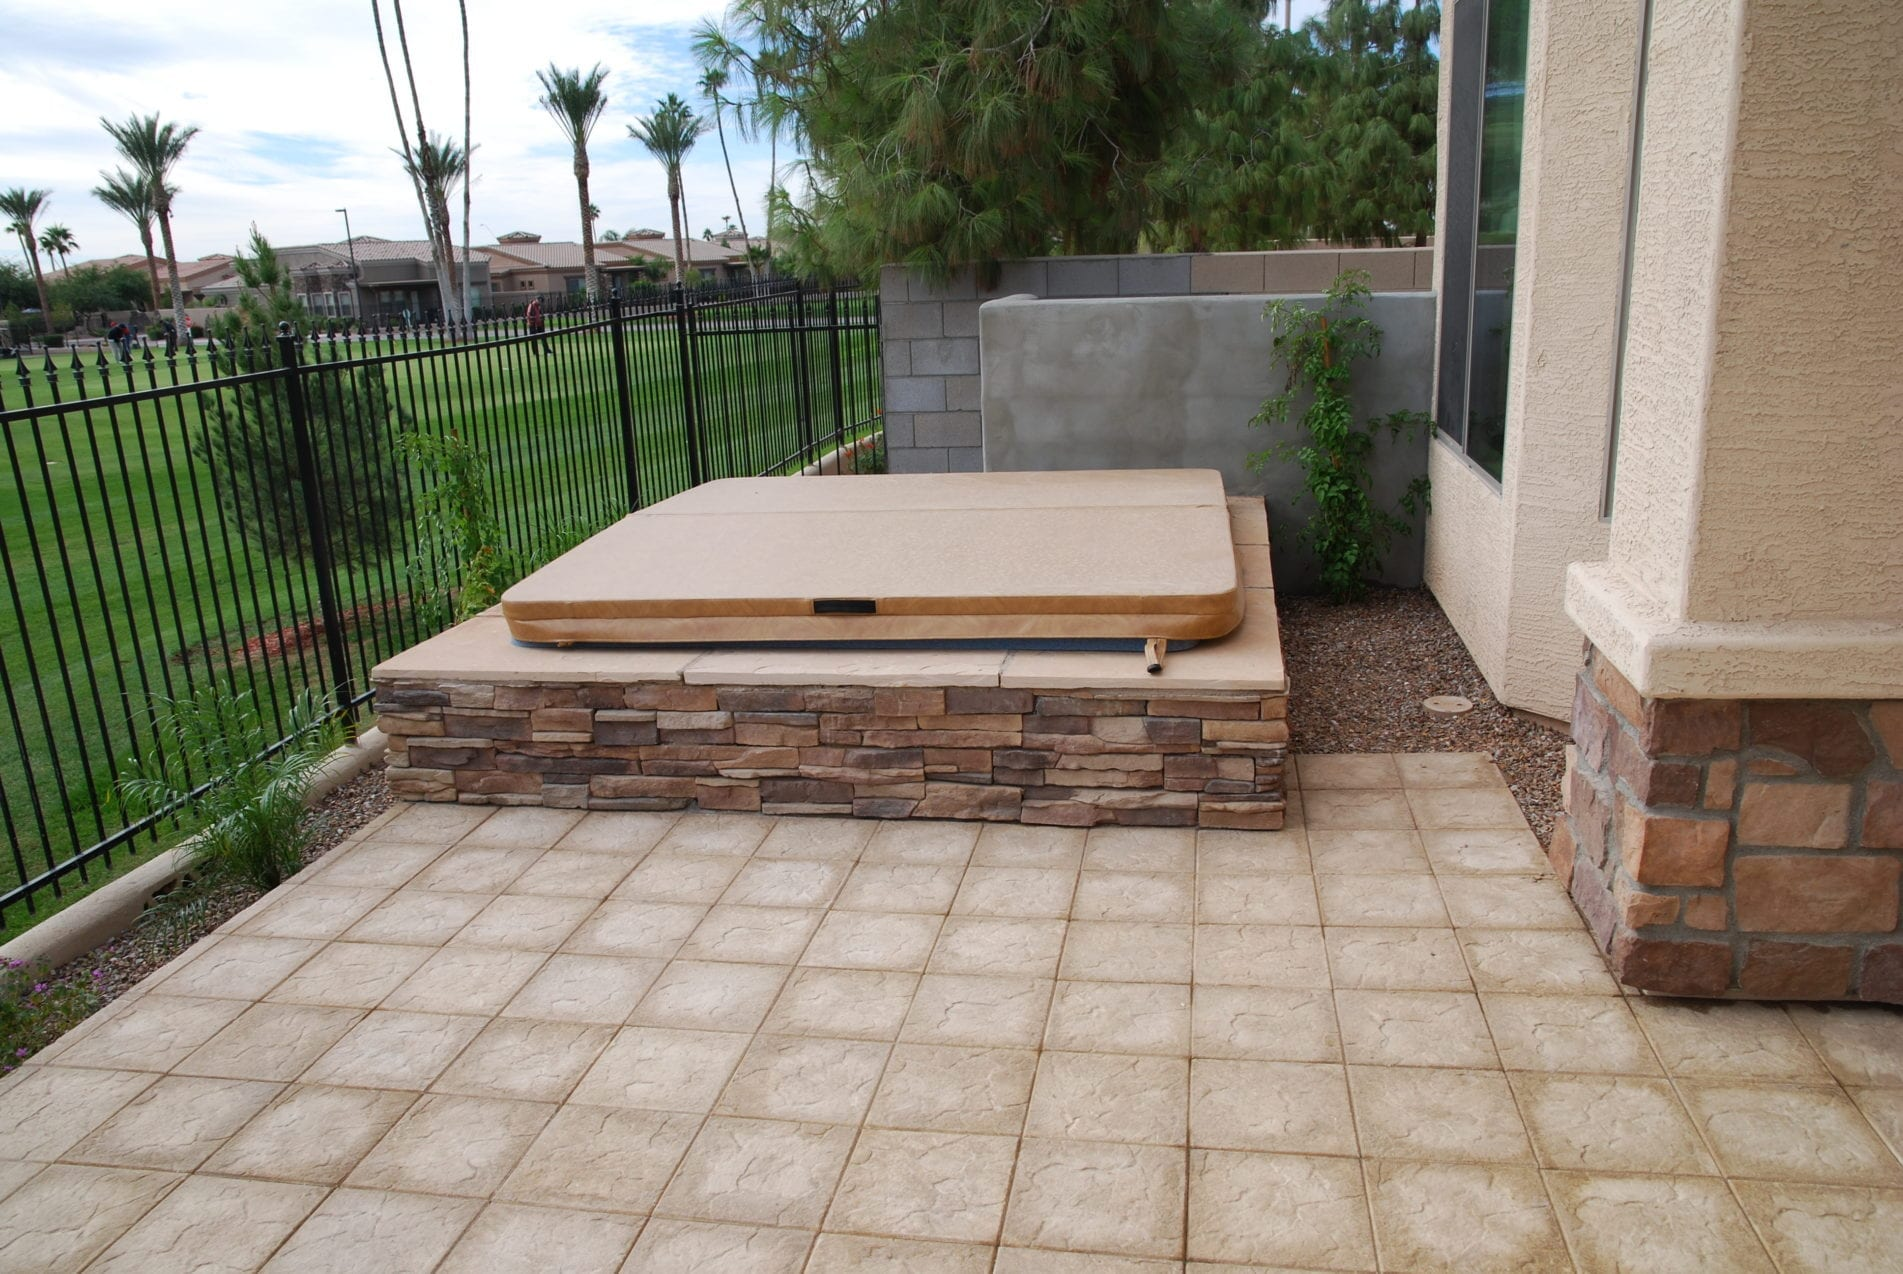 Outdoor Hot Tub Embedded